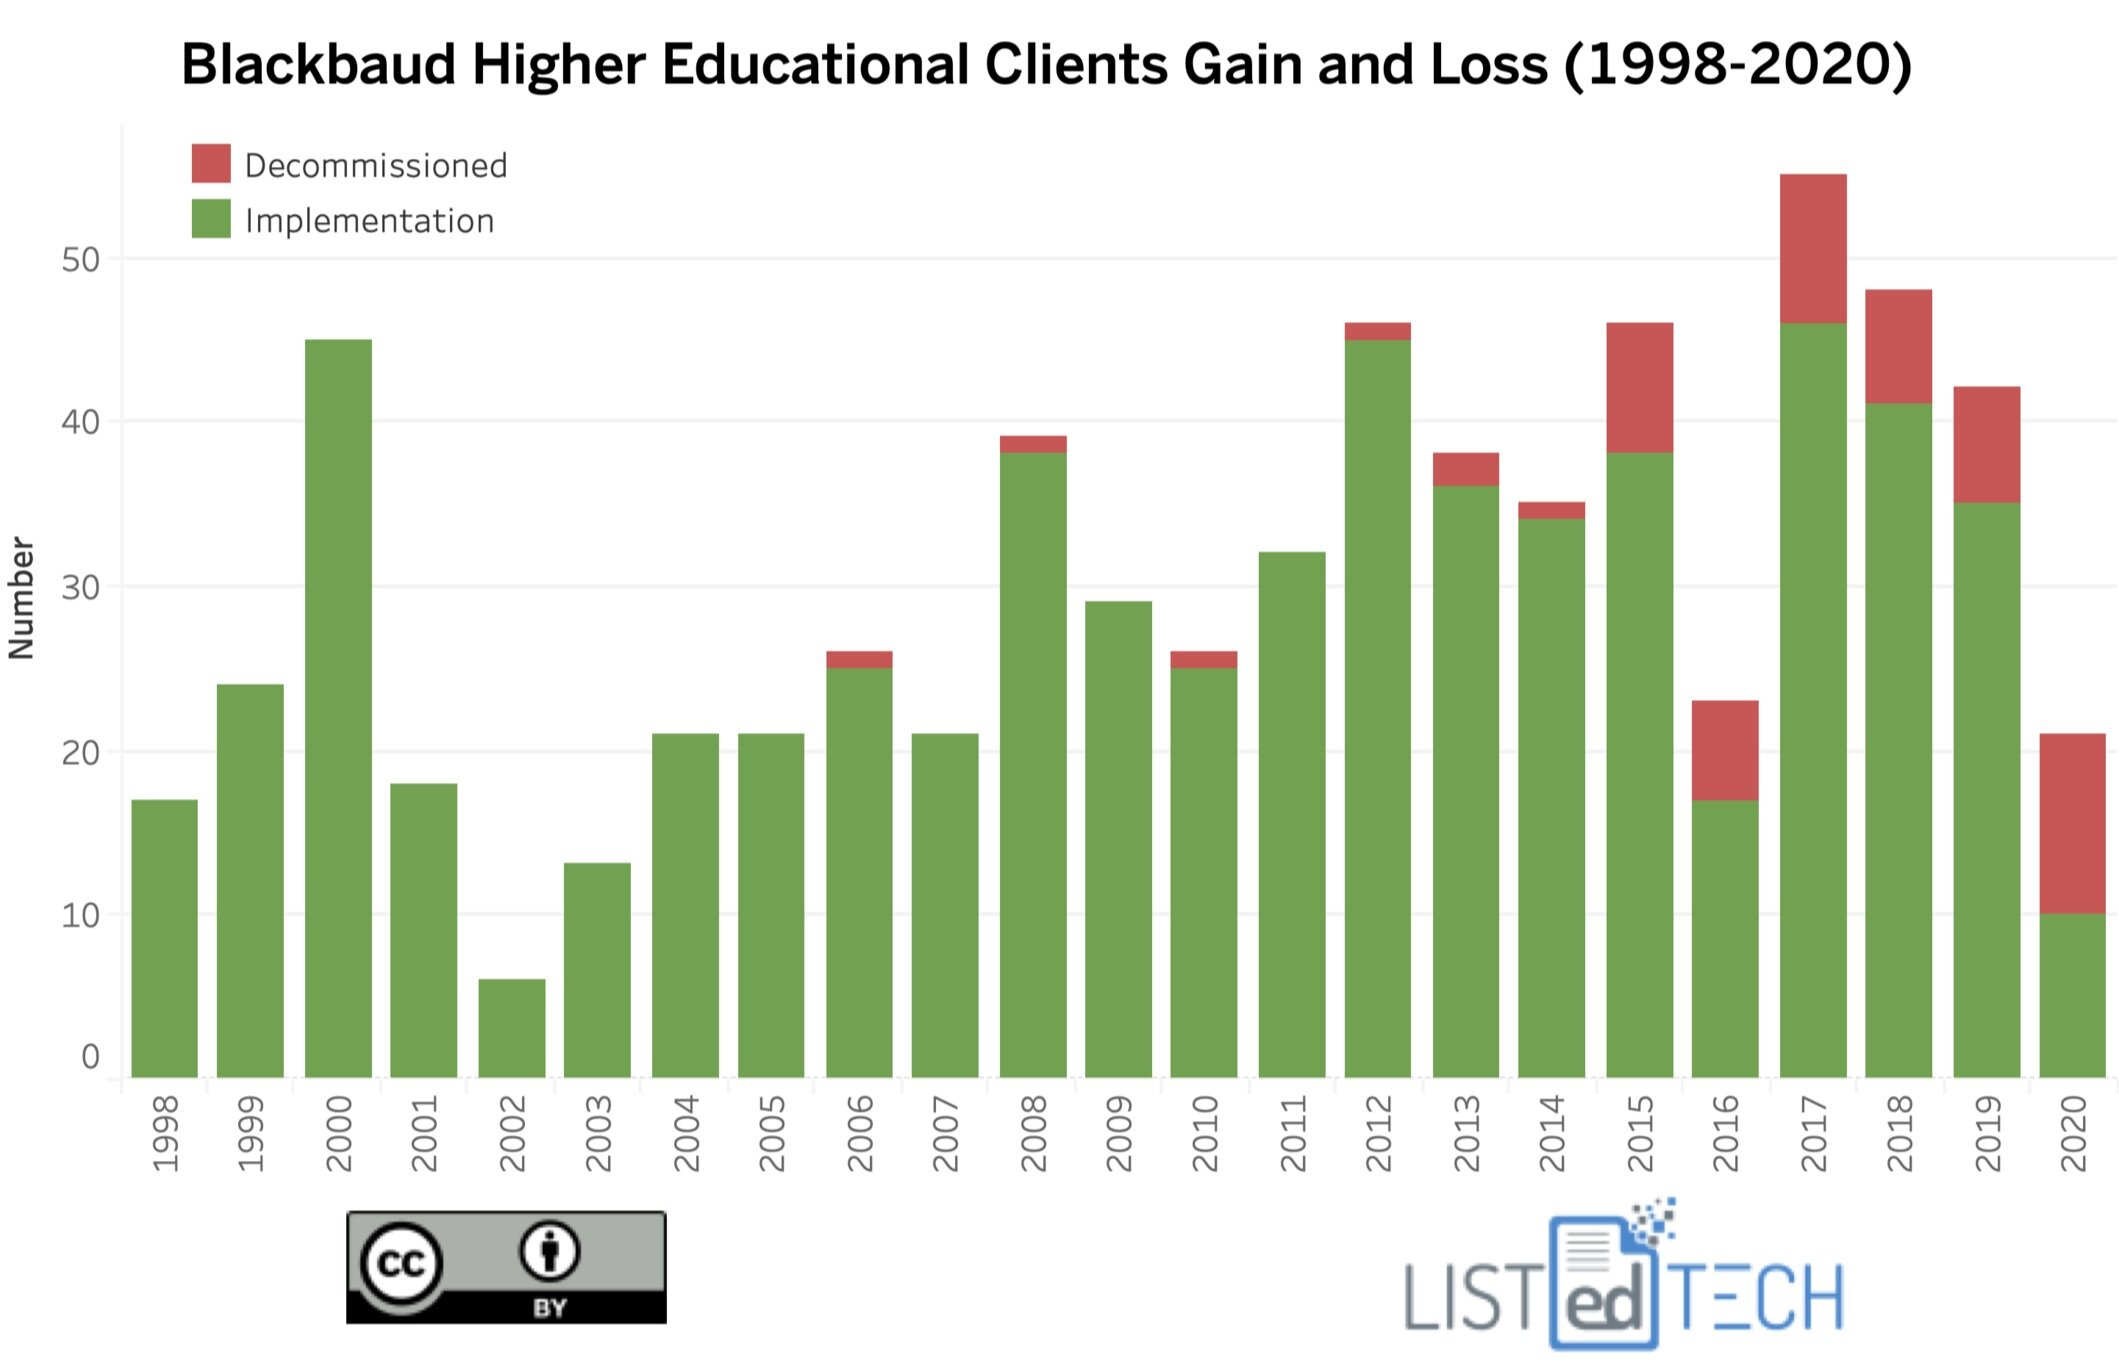 Blackbaud HigherEd Educational Clients Gain and Loss - LisTedTECH